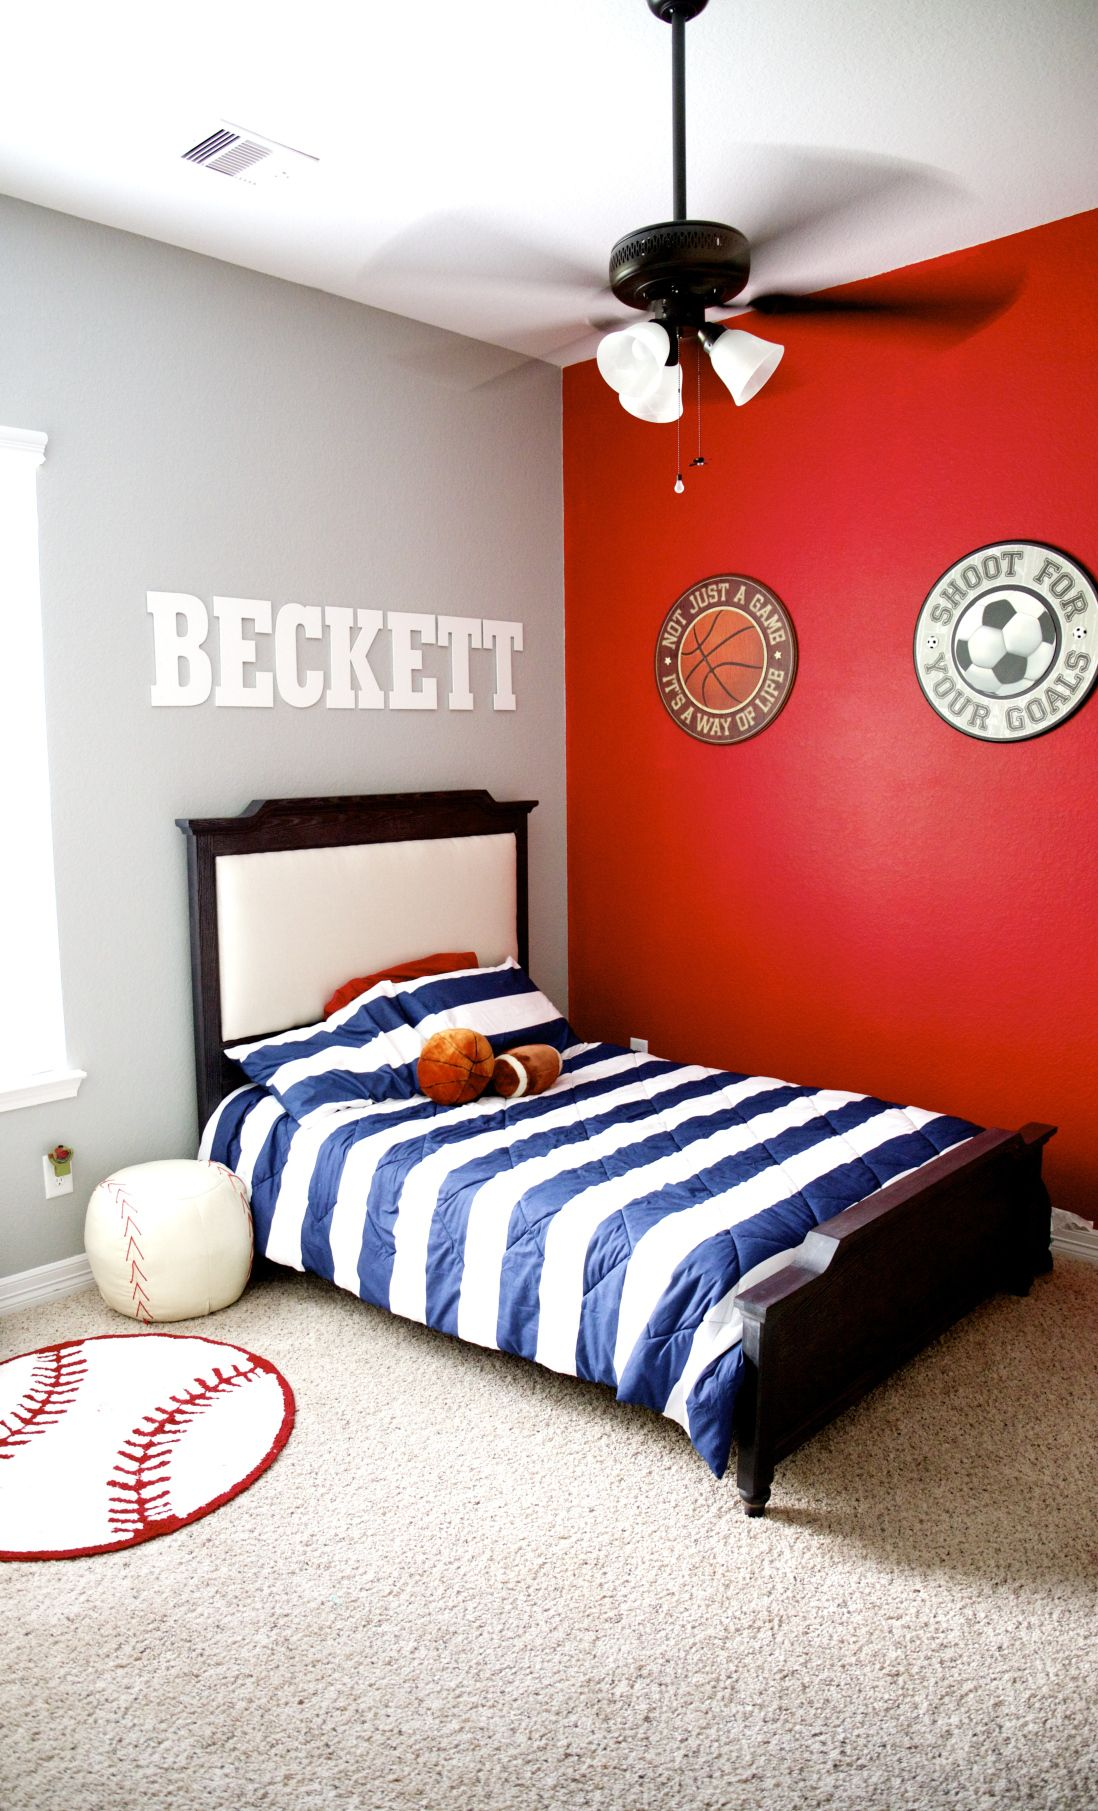 Pinterest : red kids room - amorenlinea.org